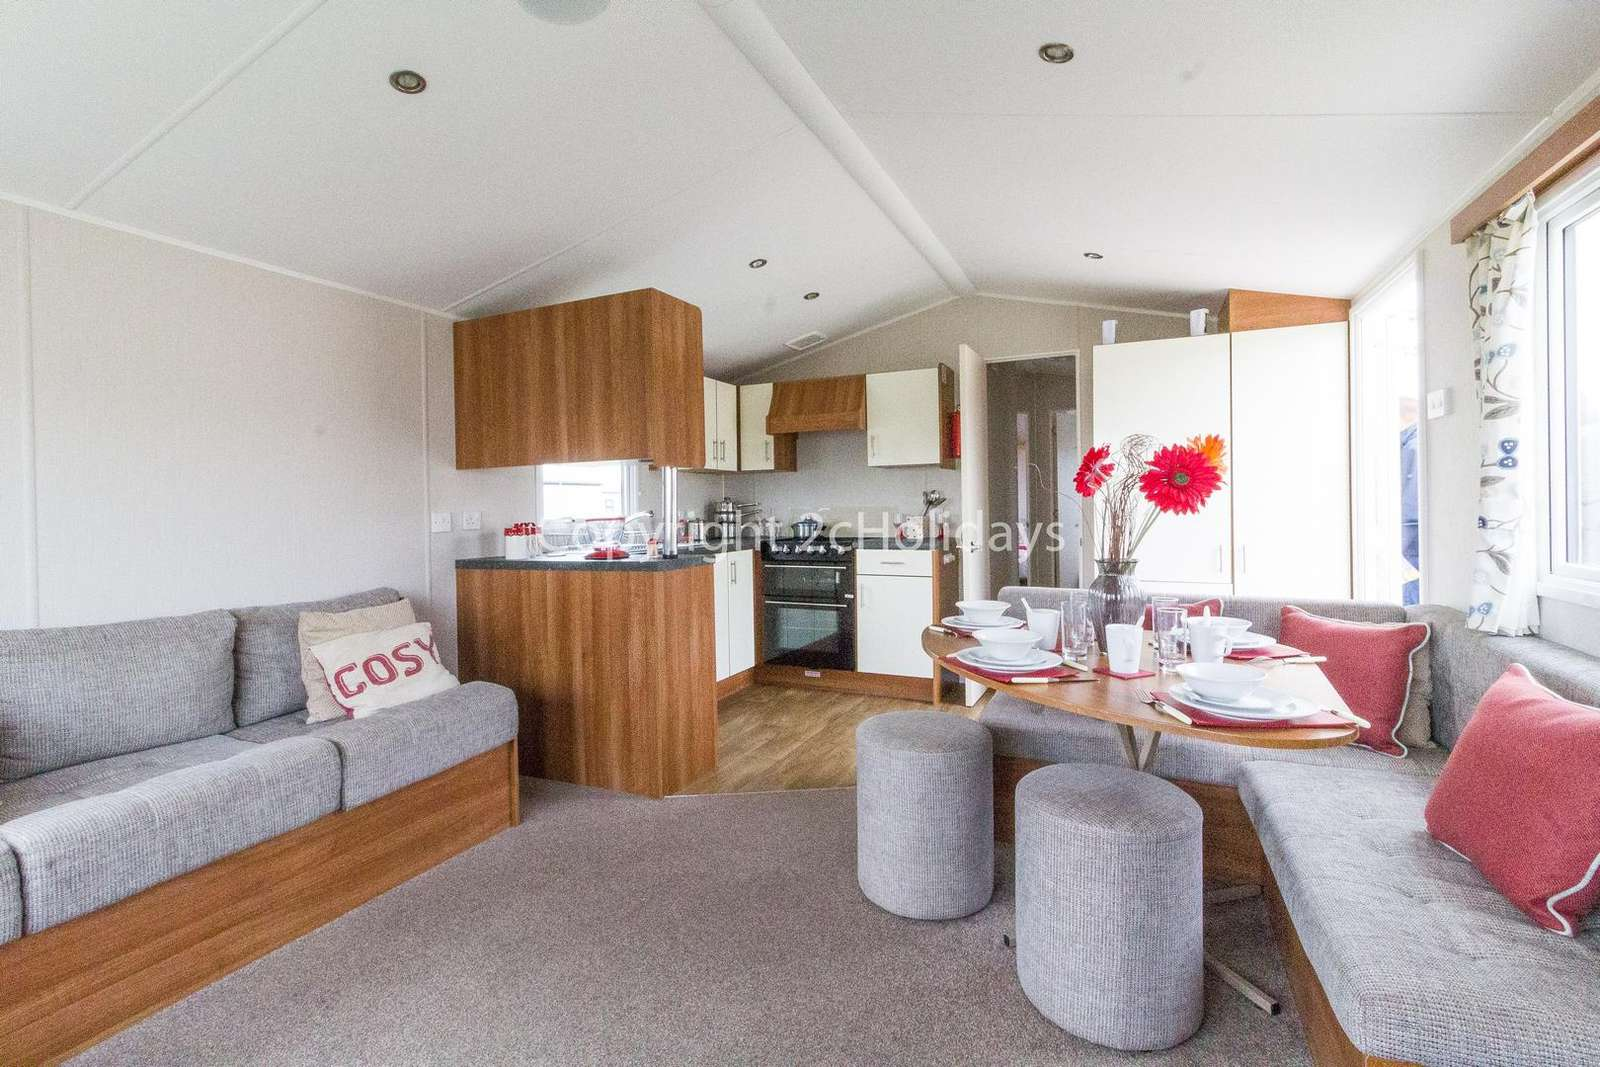 The perfect place to dine with your family or friends in this pet-friendly accommodation